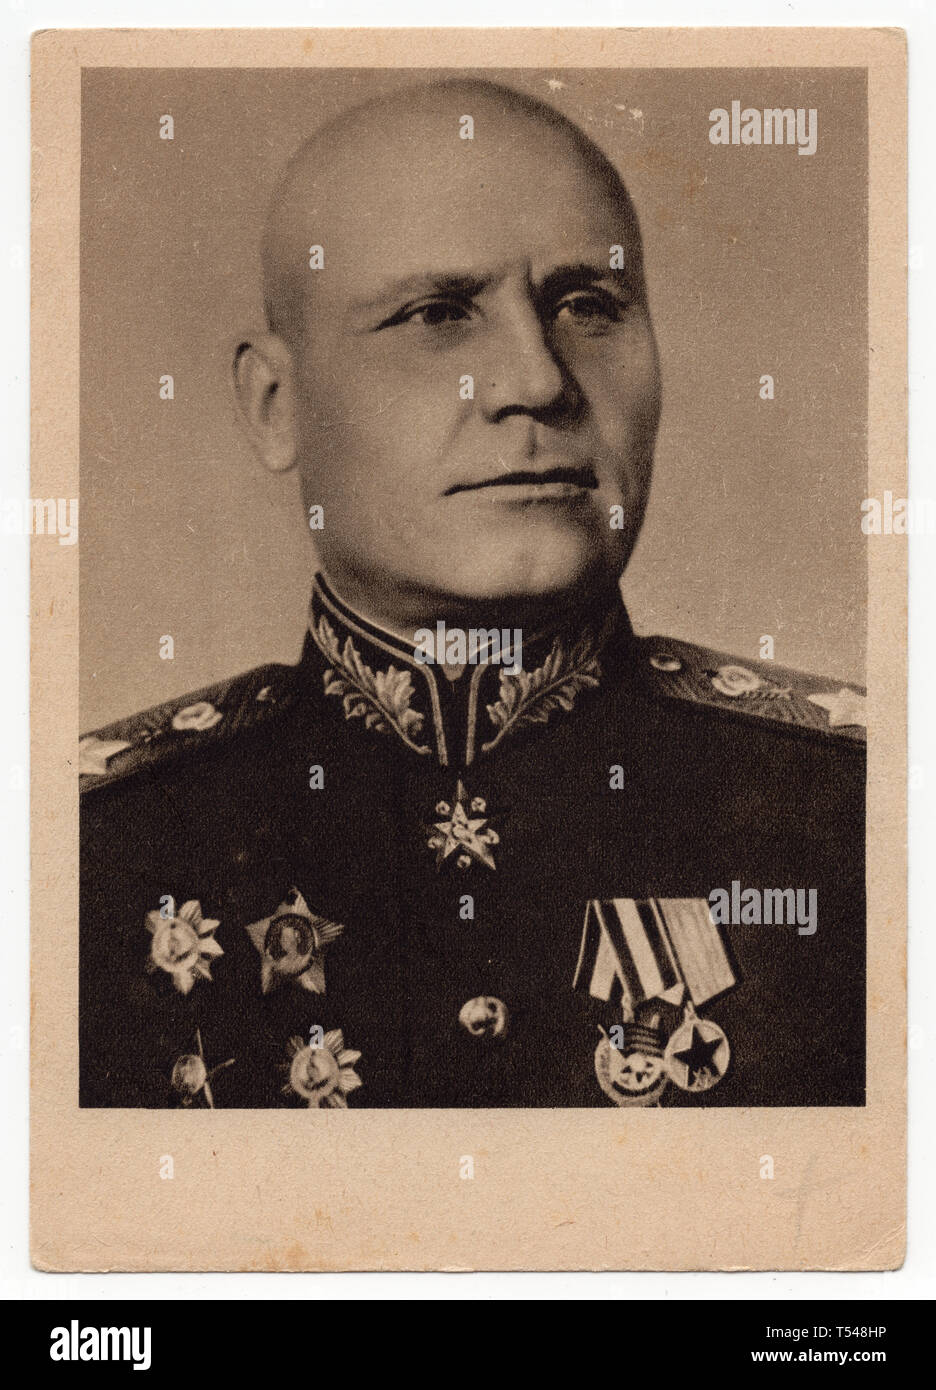 Soviet military commander Ivan Konev. Czechoslovak vintage postcard issued in 1945. Courtesy of the Azoor Postcard Collection. - Stock Image